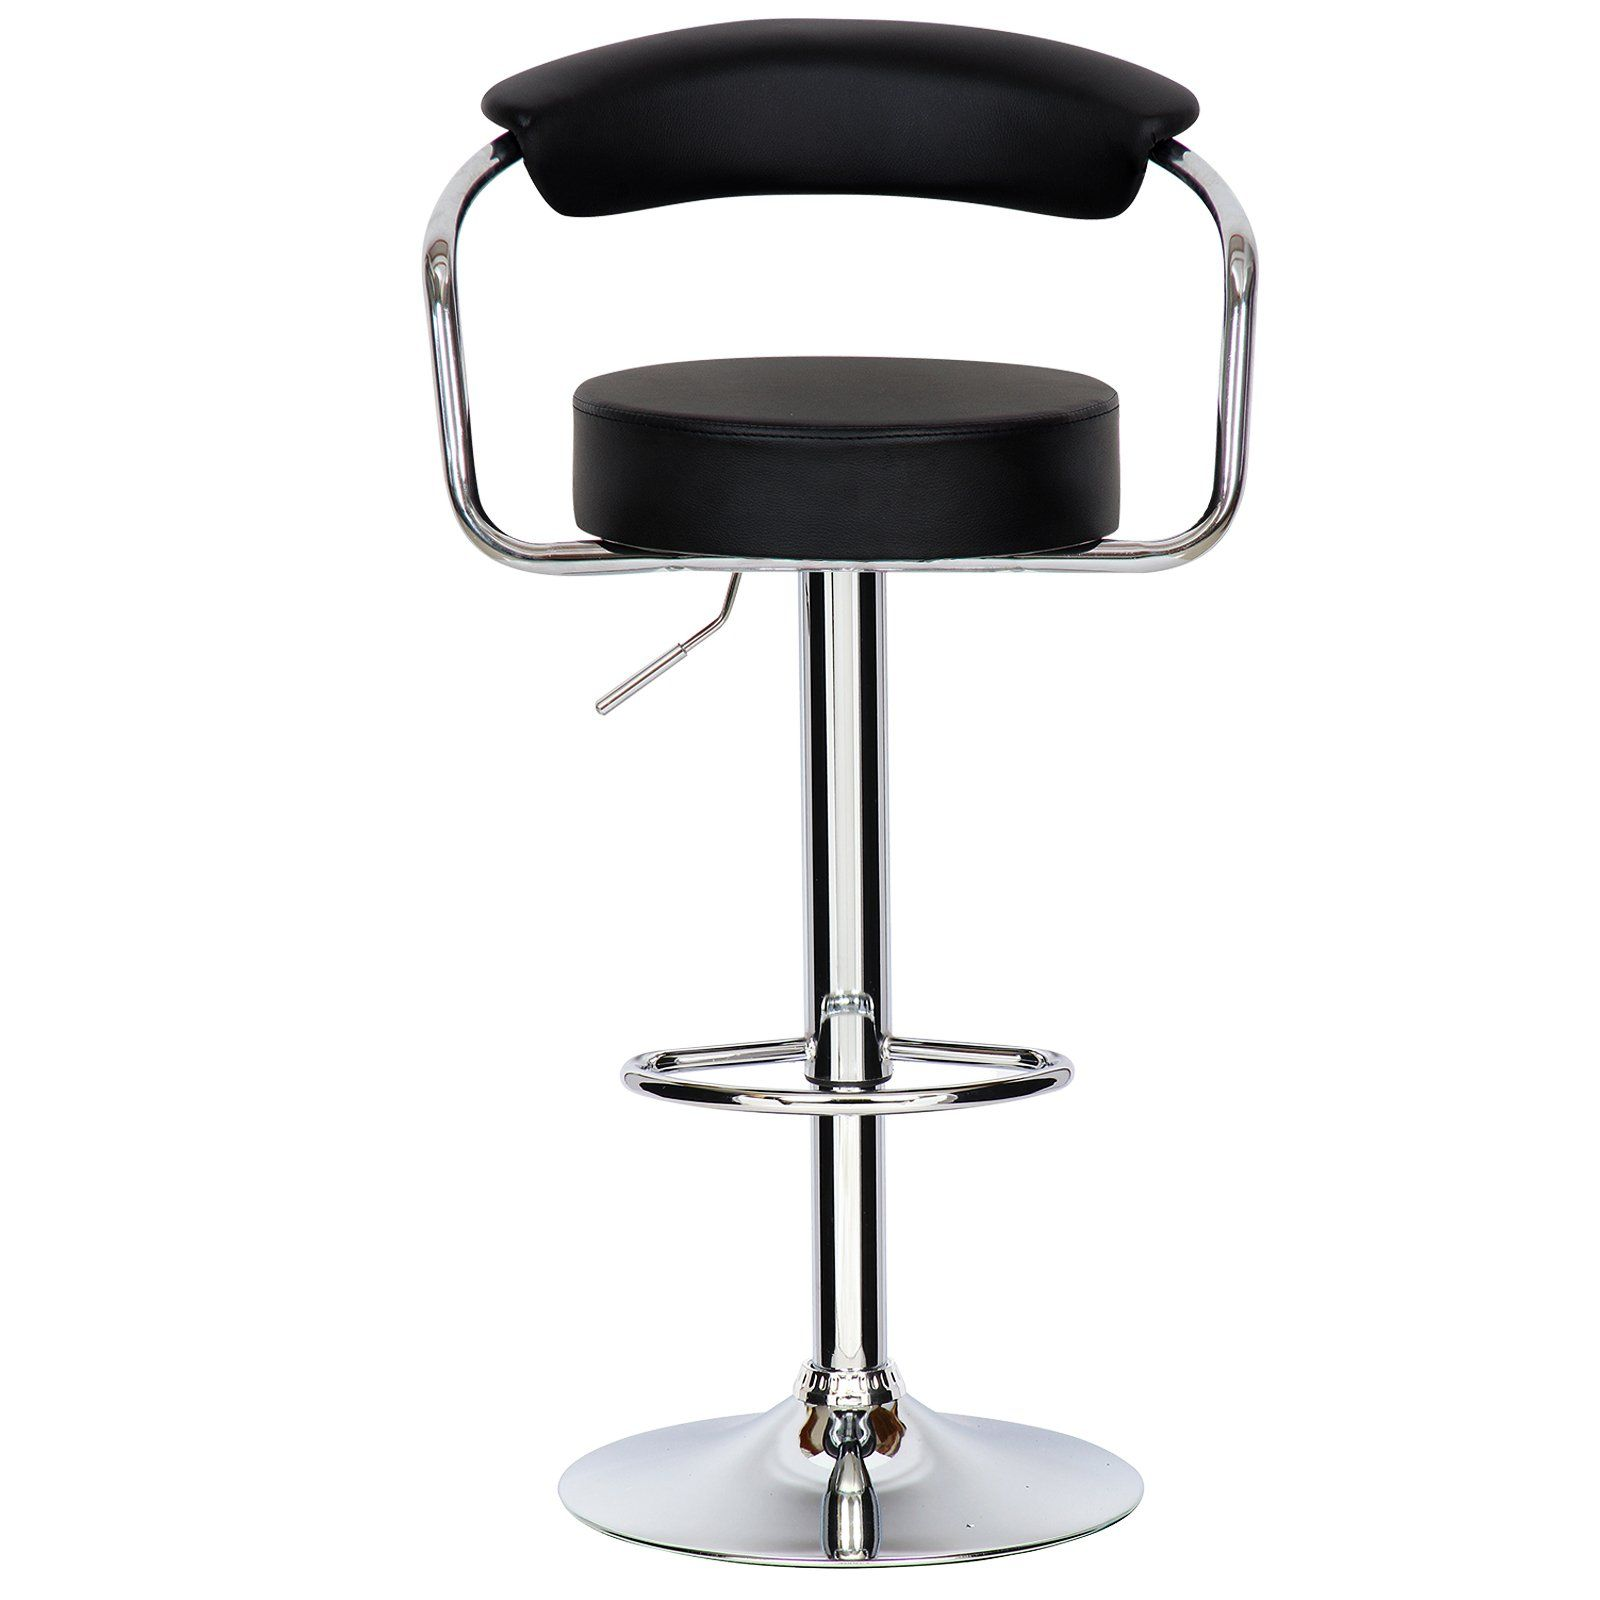 Woltu absx1009blkc luxury faux leather bar stools kitchen stools breakfast barstools with backs and arms gas strut adjustable 3341 7x13 8x13 8 inch black